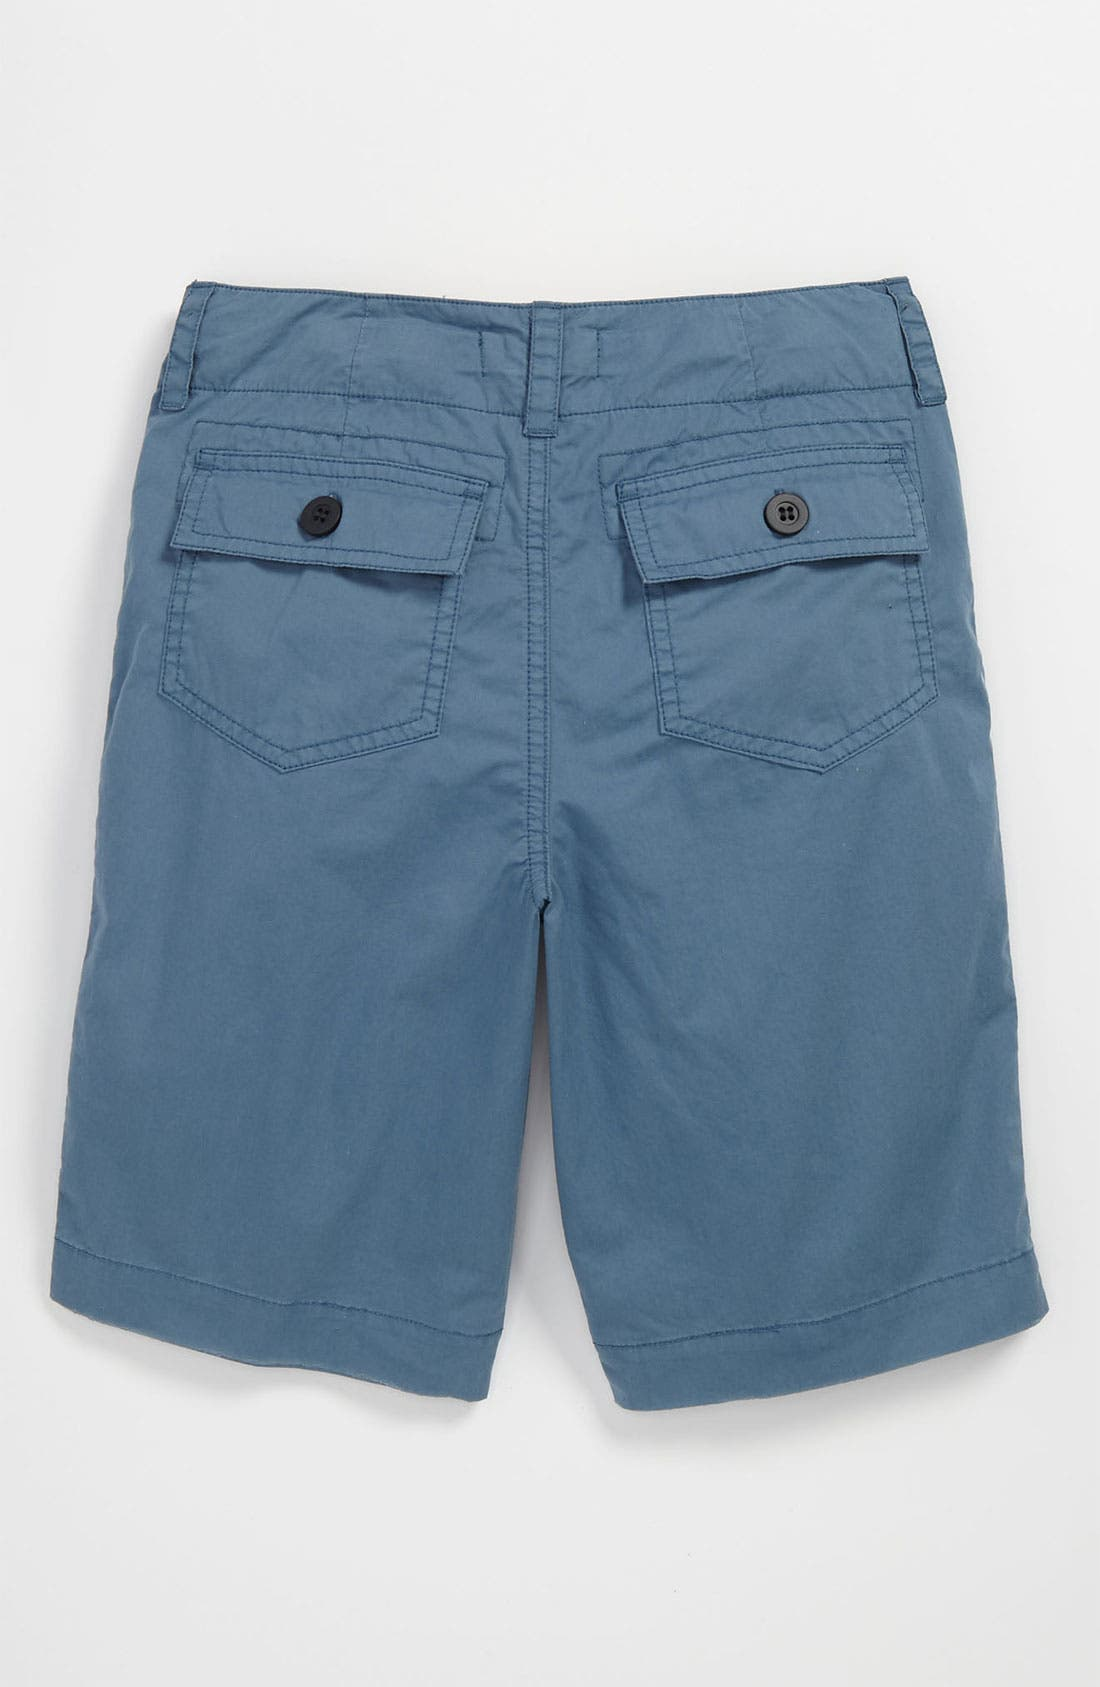 Alternate Image 2  - Peek 'Jericho' Utility Shorts (Toddler Boys, Little Boys & Big Boys)